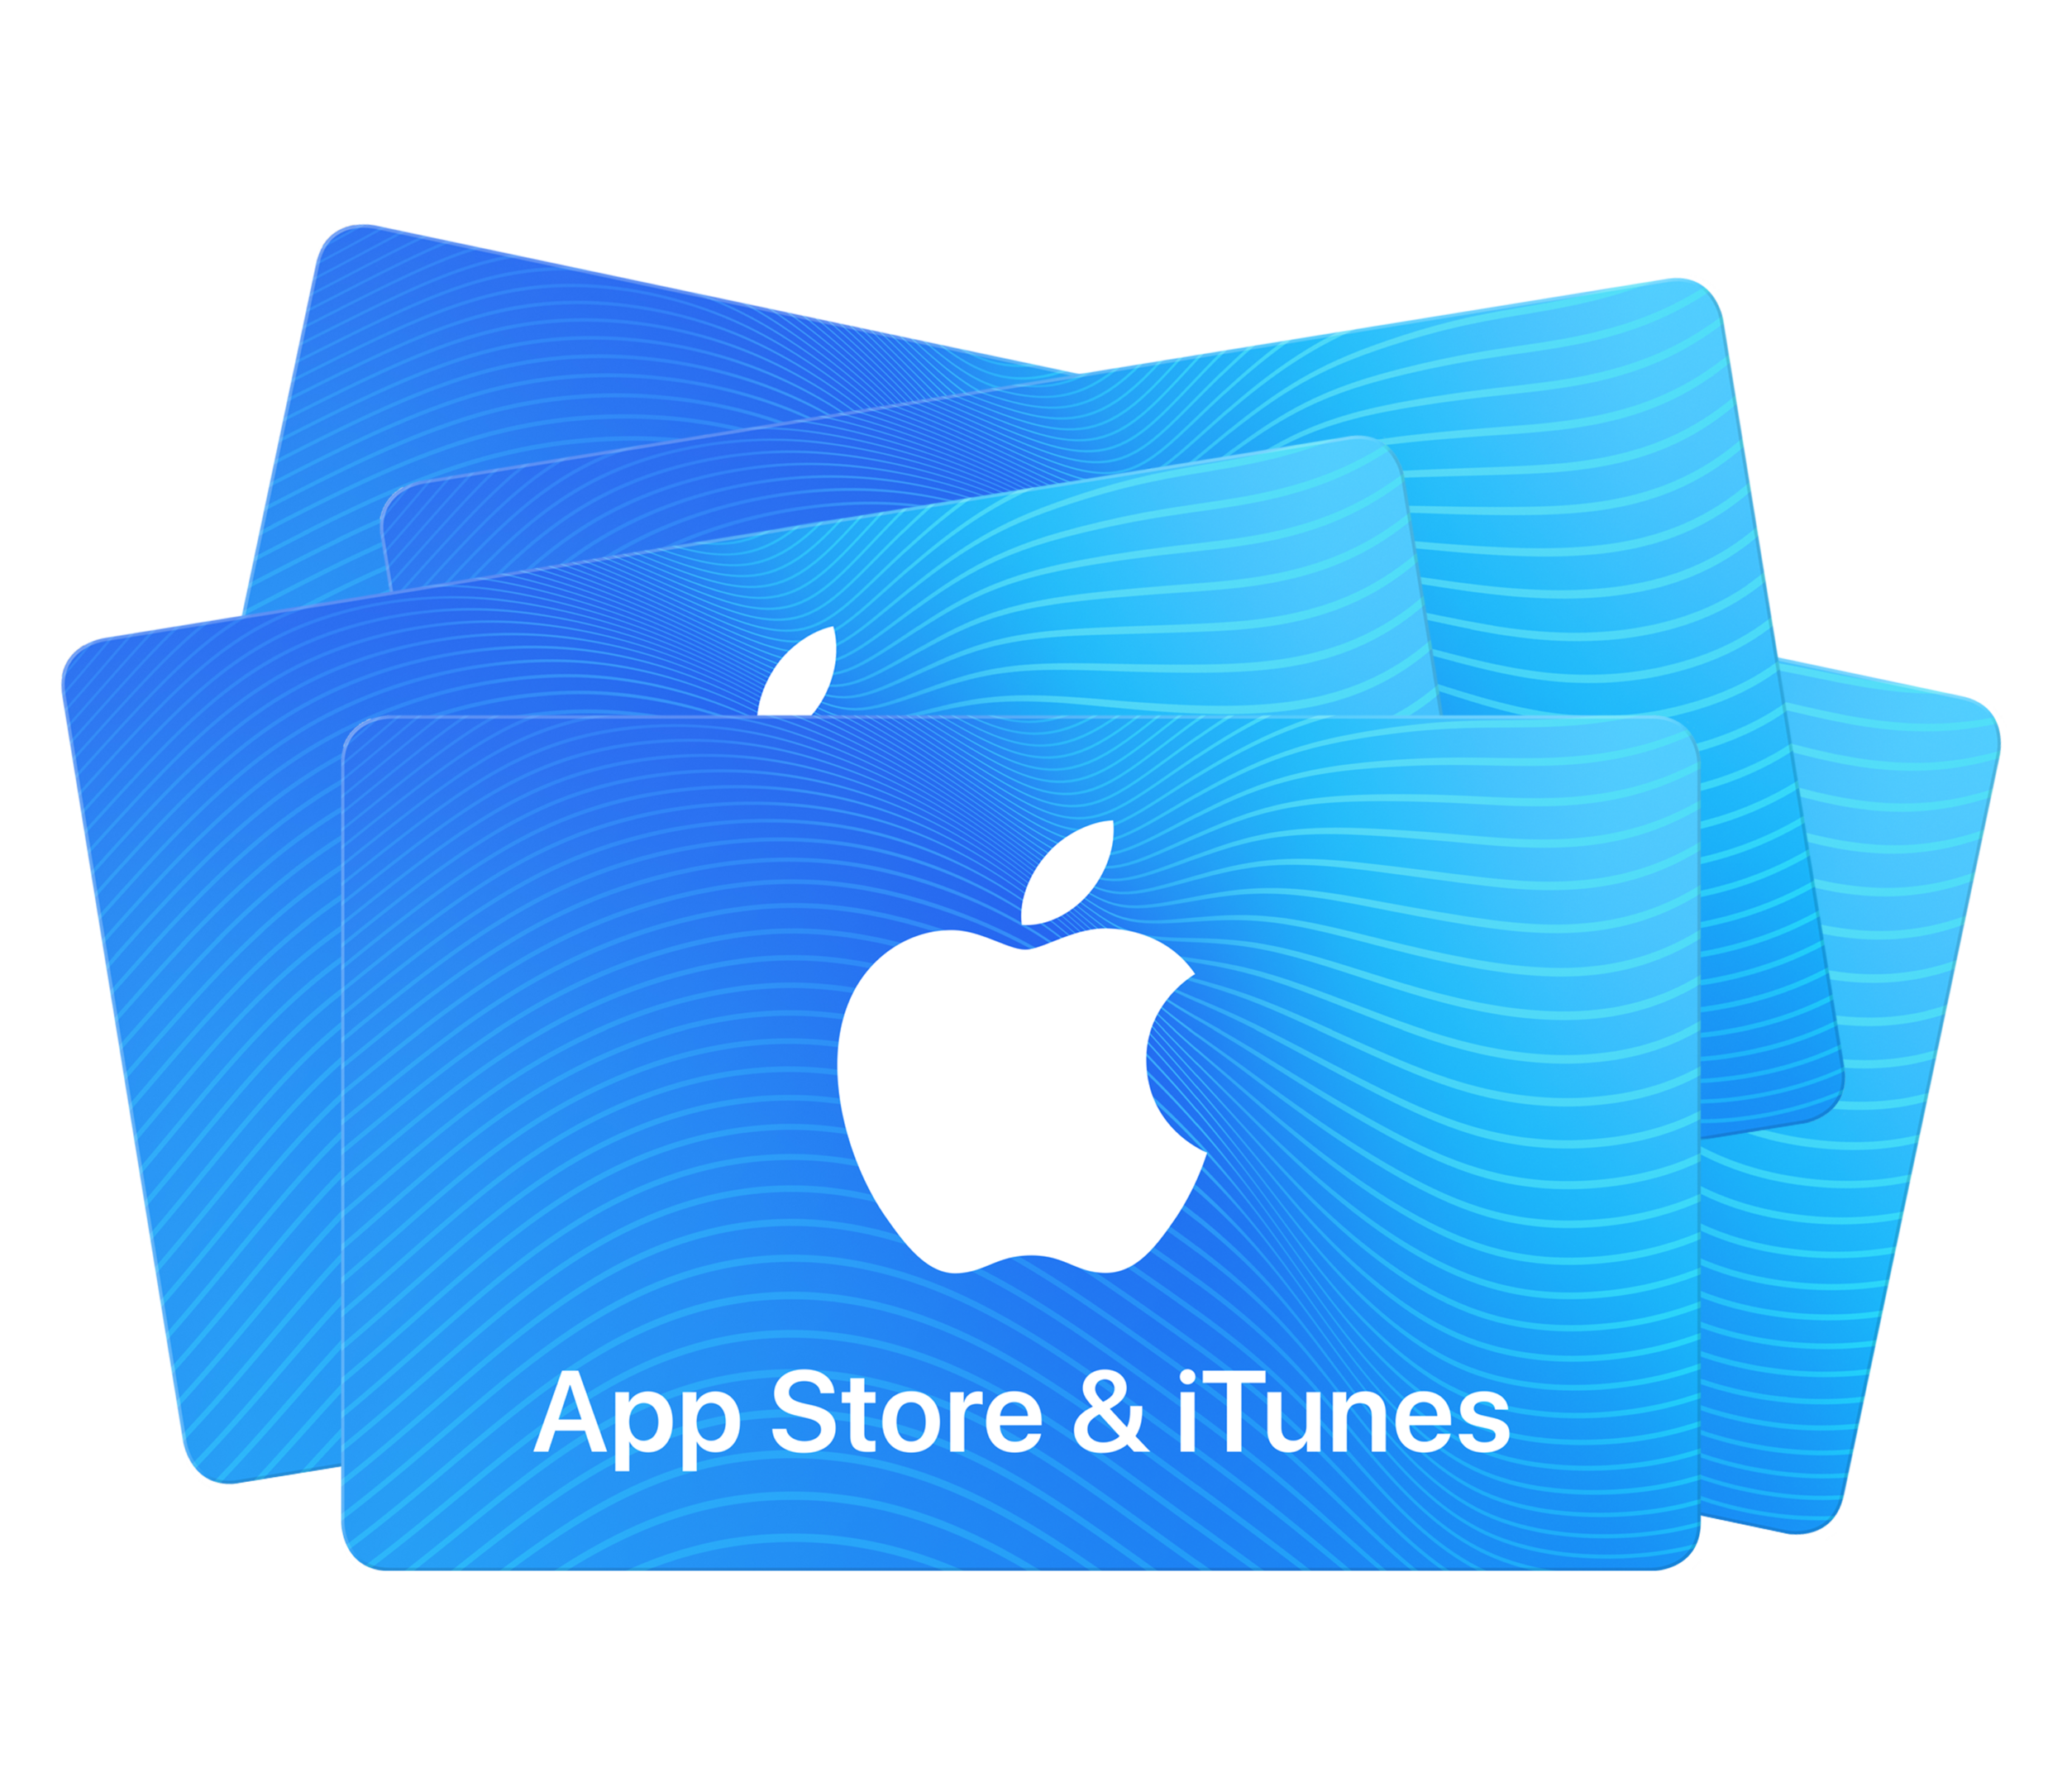 NEW PRODUCTS - SAVE! - Want to save a bit more on your iTunes? Opt for new options where you get multiple smaller value cards at a discount! Click the iTunes cards to shop now!$50 - 2x$25 Cards - SAVE 70¢$100 - 2x$50 Cards - SAVE 70¢$100 - 4x$25 Cards - SAVE $1.20